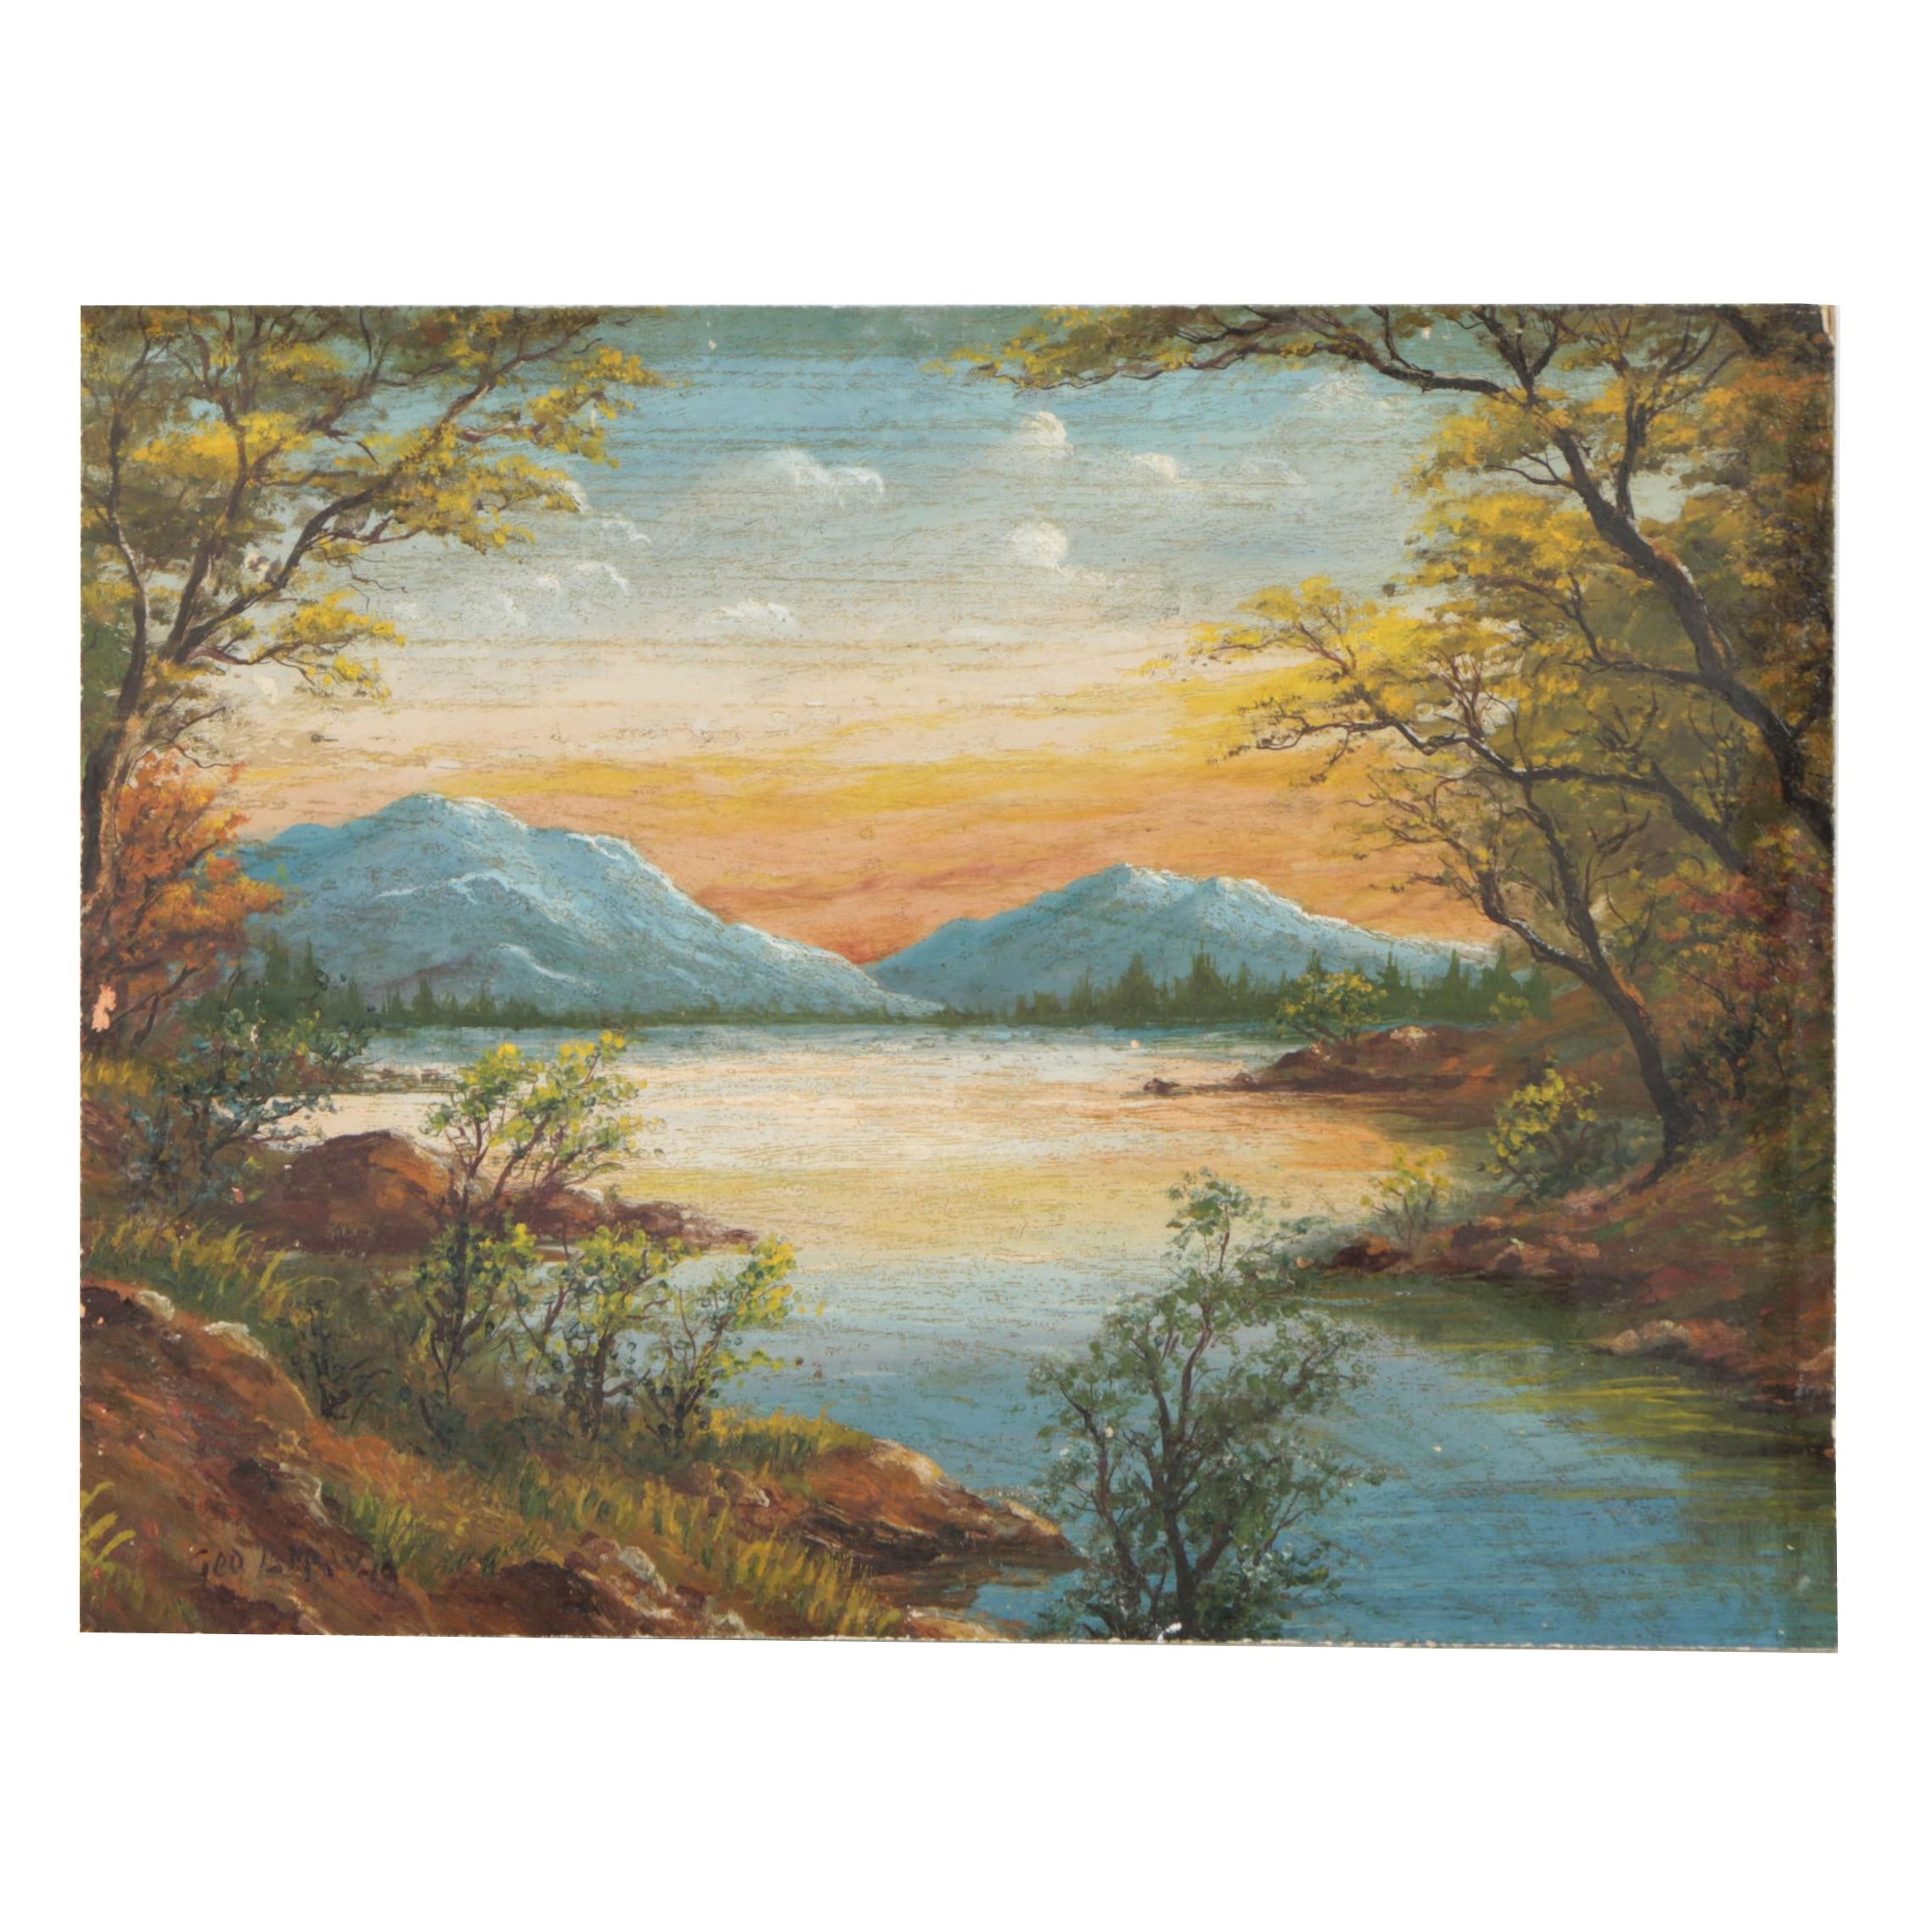 Vintage Oil Painting of the Catskill Mountains